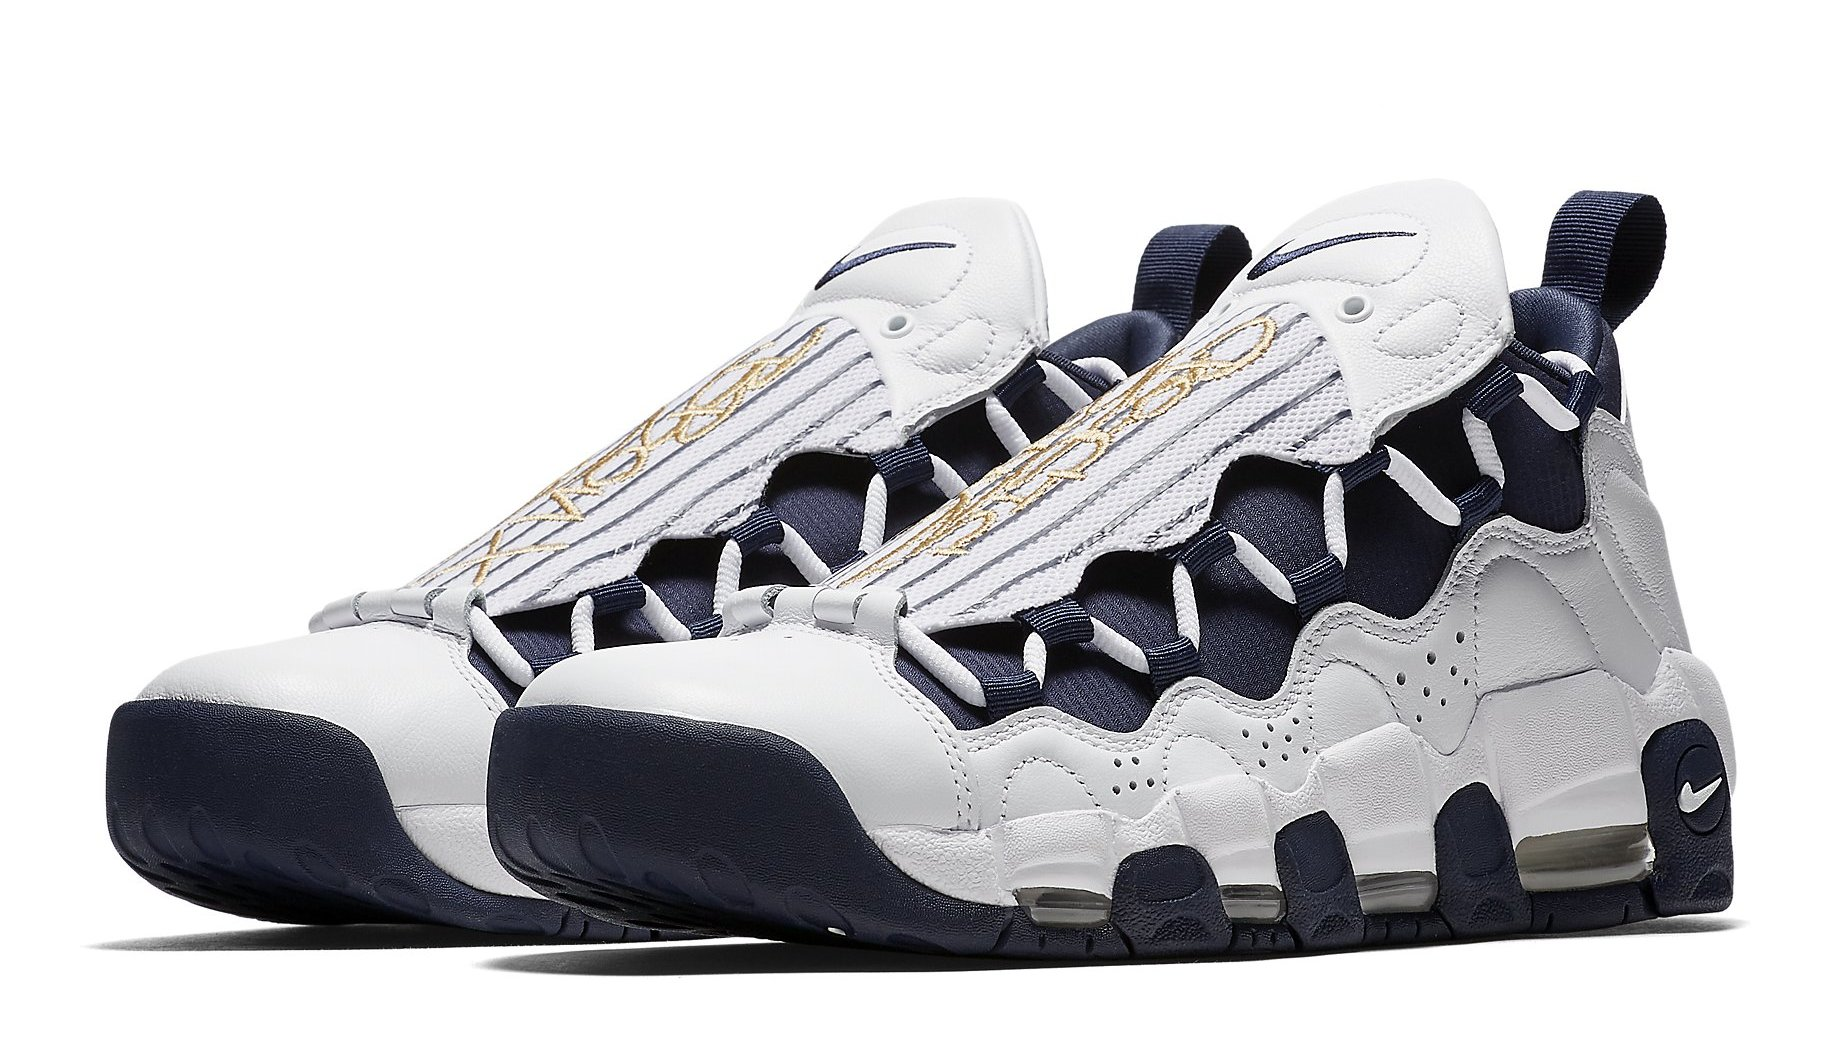 42534619f415 ... italy nike gives new york boroughs more money 4861d 5e65f